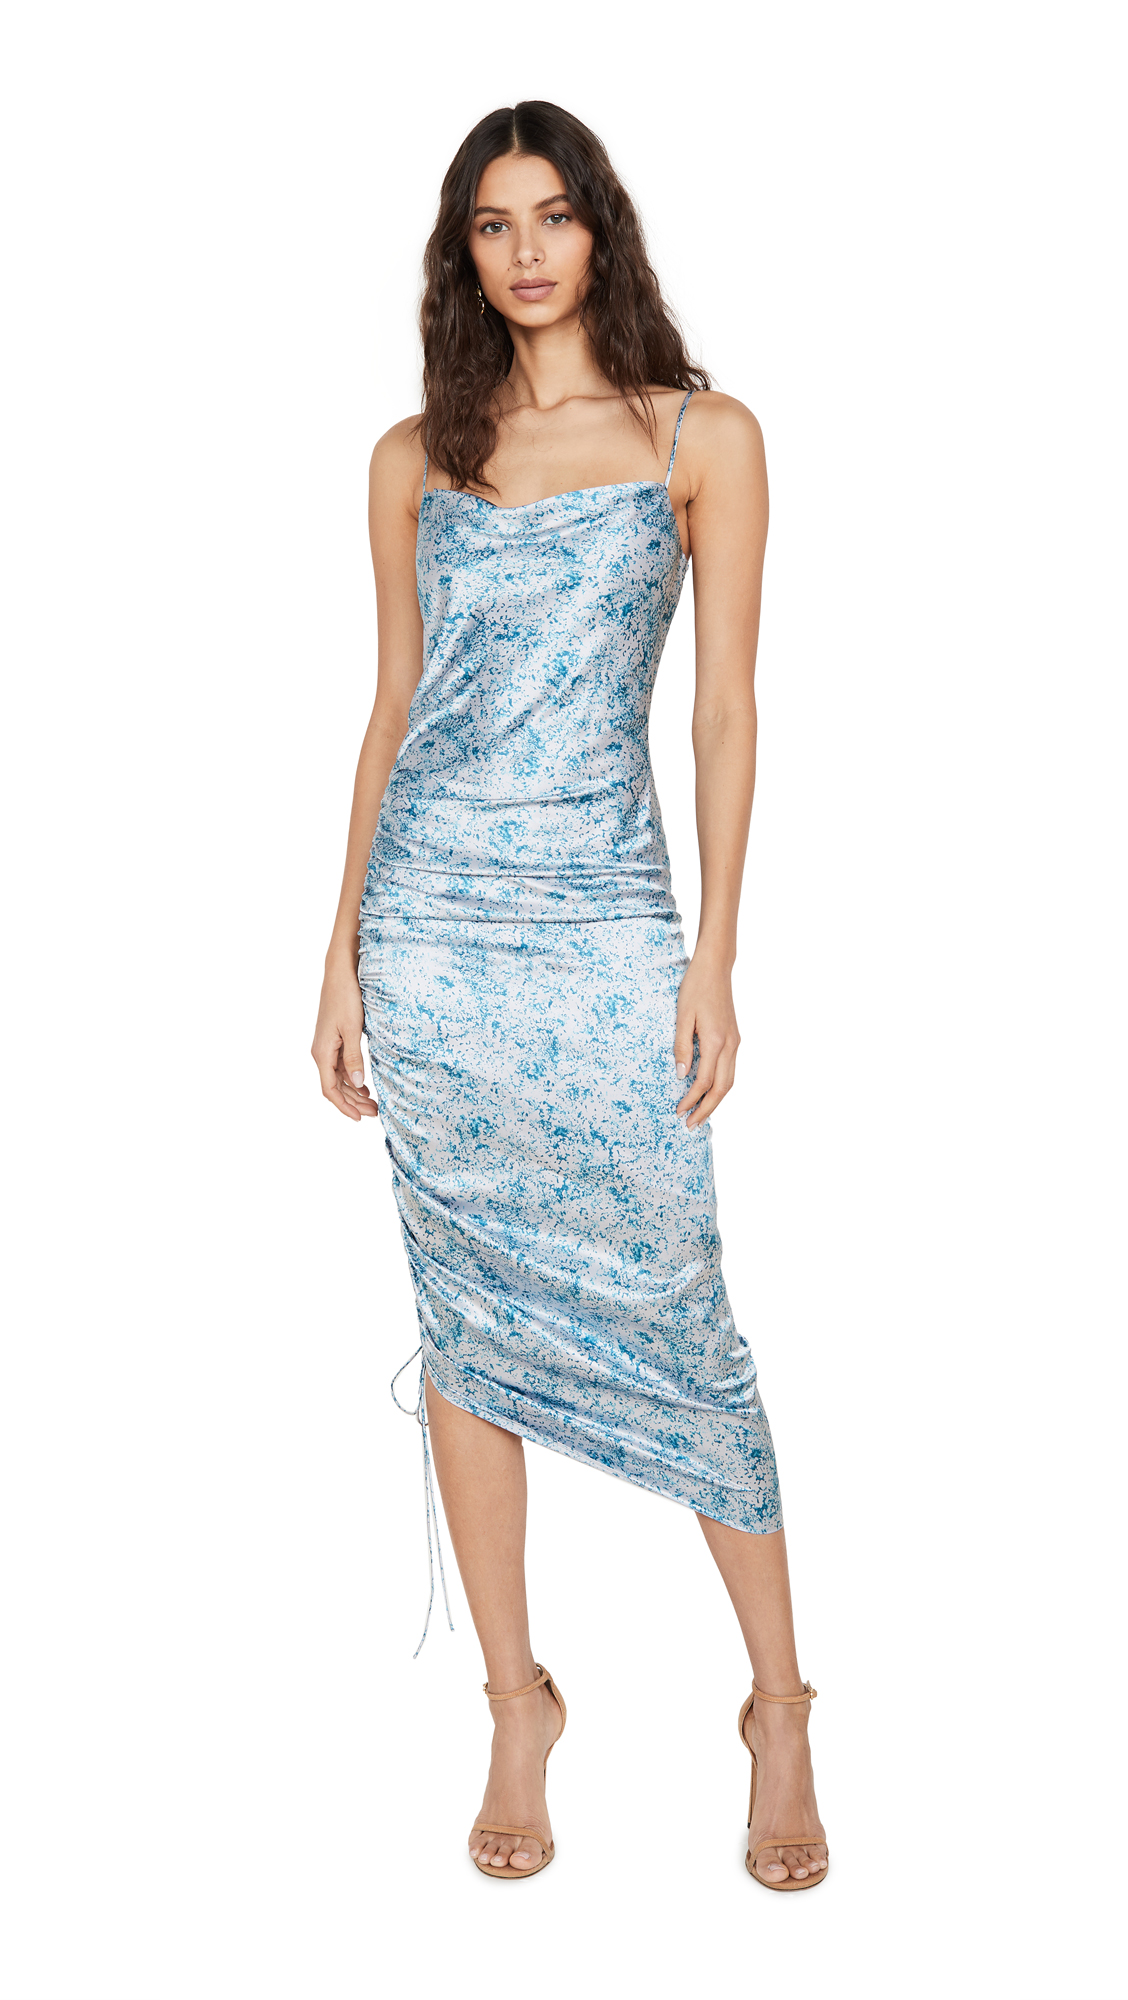 Cinq a Sept Sapir Dress - 30% Off Sale